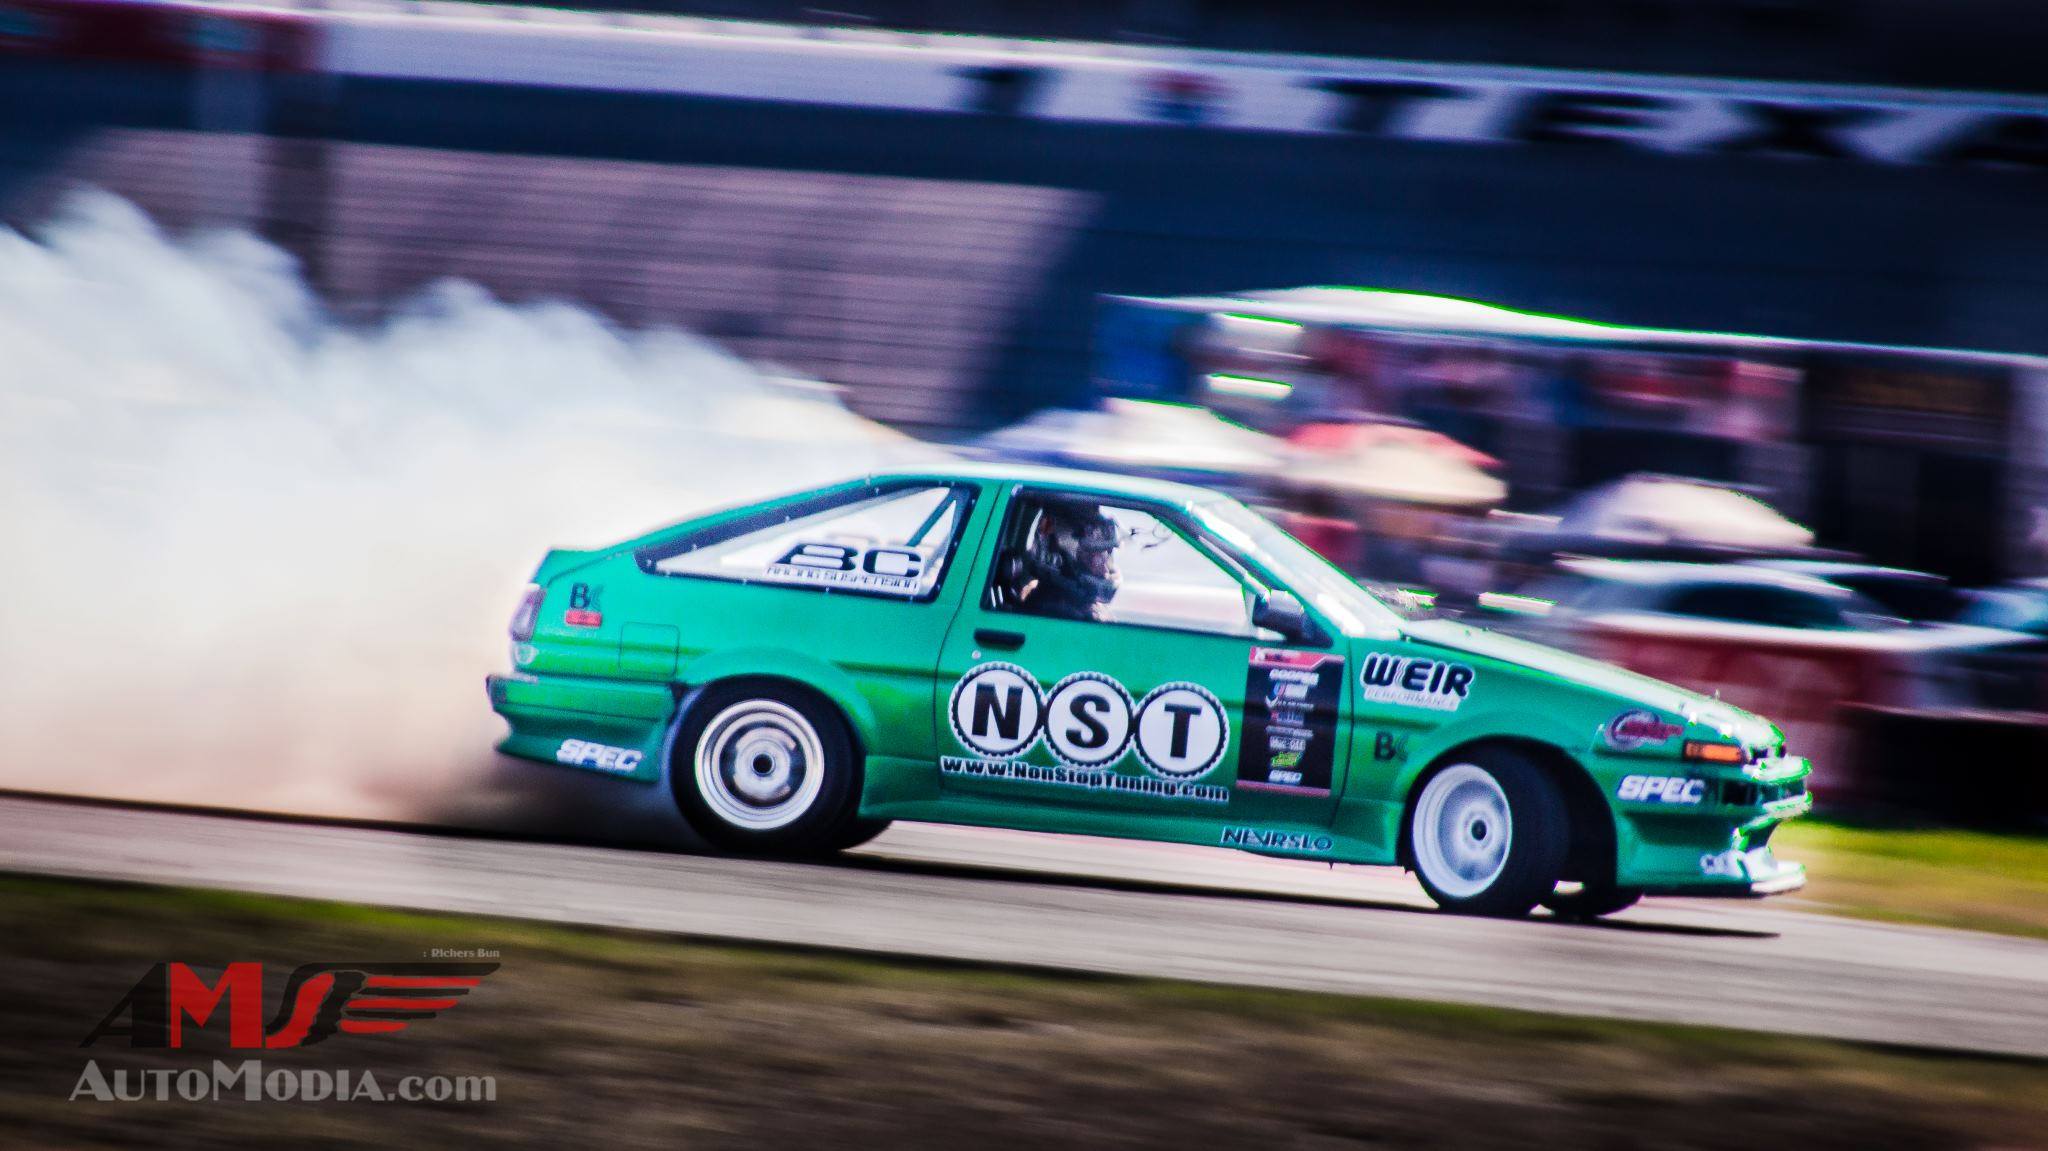 Most Iconic 86 Drift Cars Maybe 86motoring Ae86 4age Wiring Diagram Image Search Results Will Parsons Nst